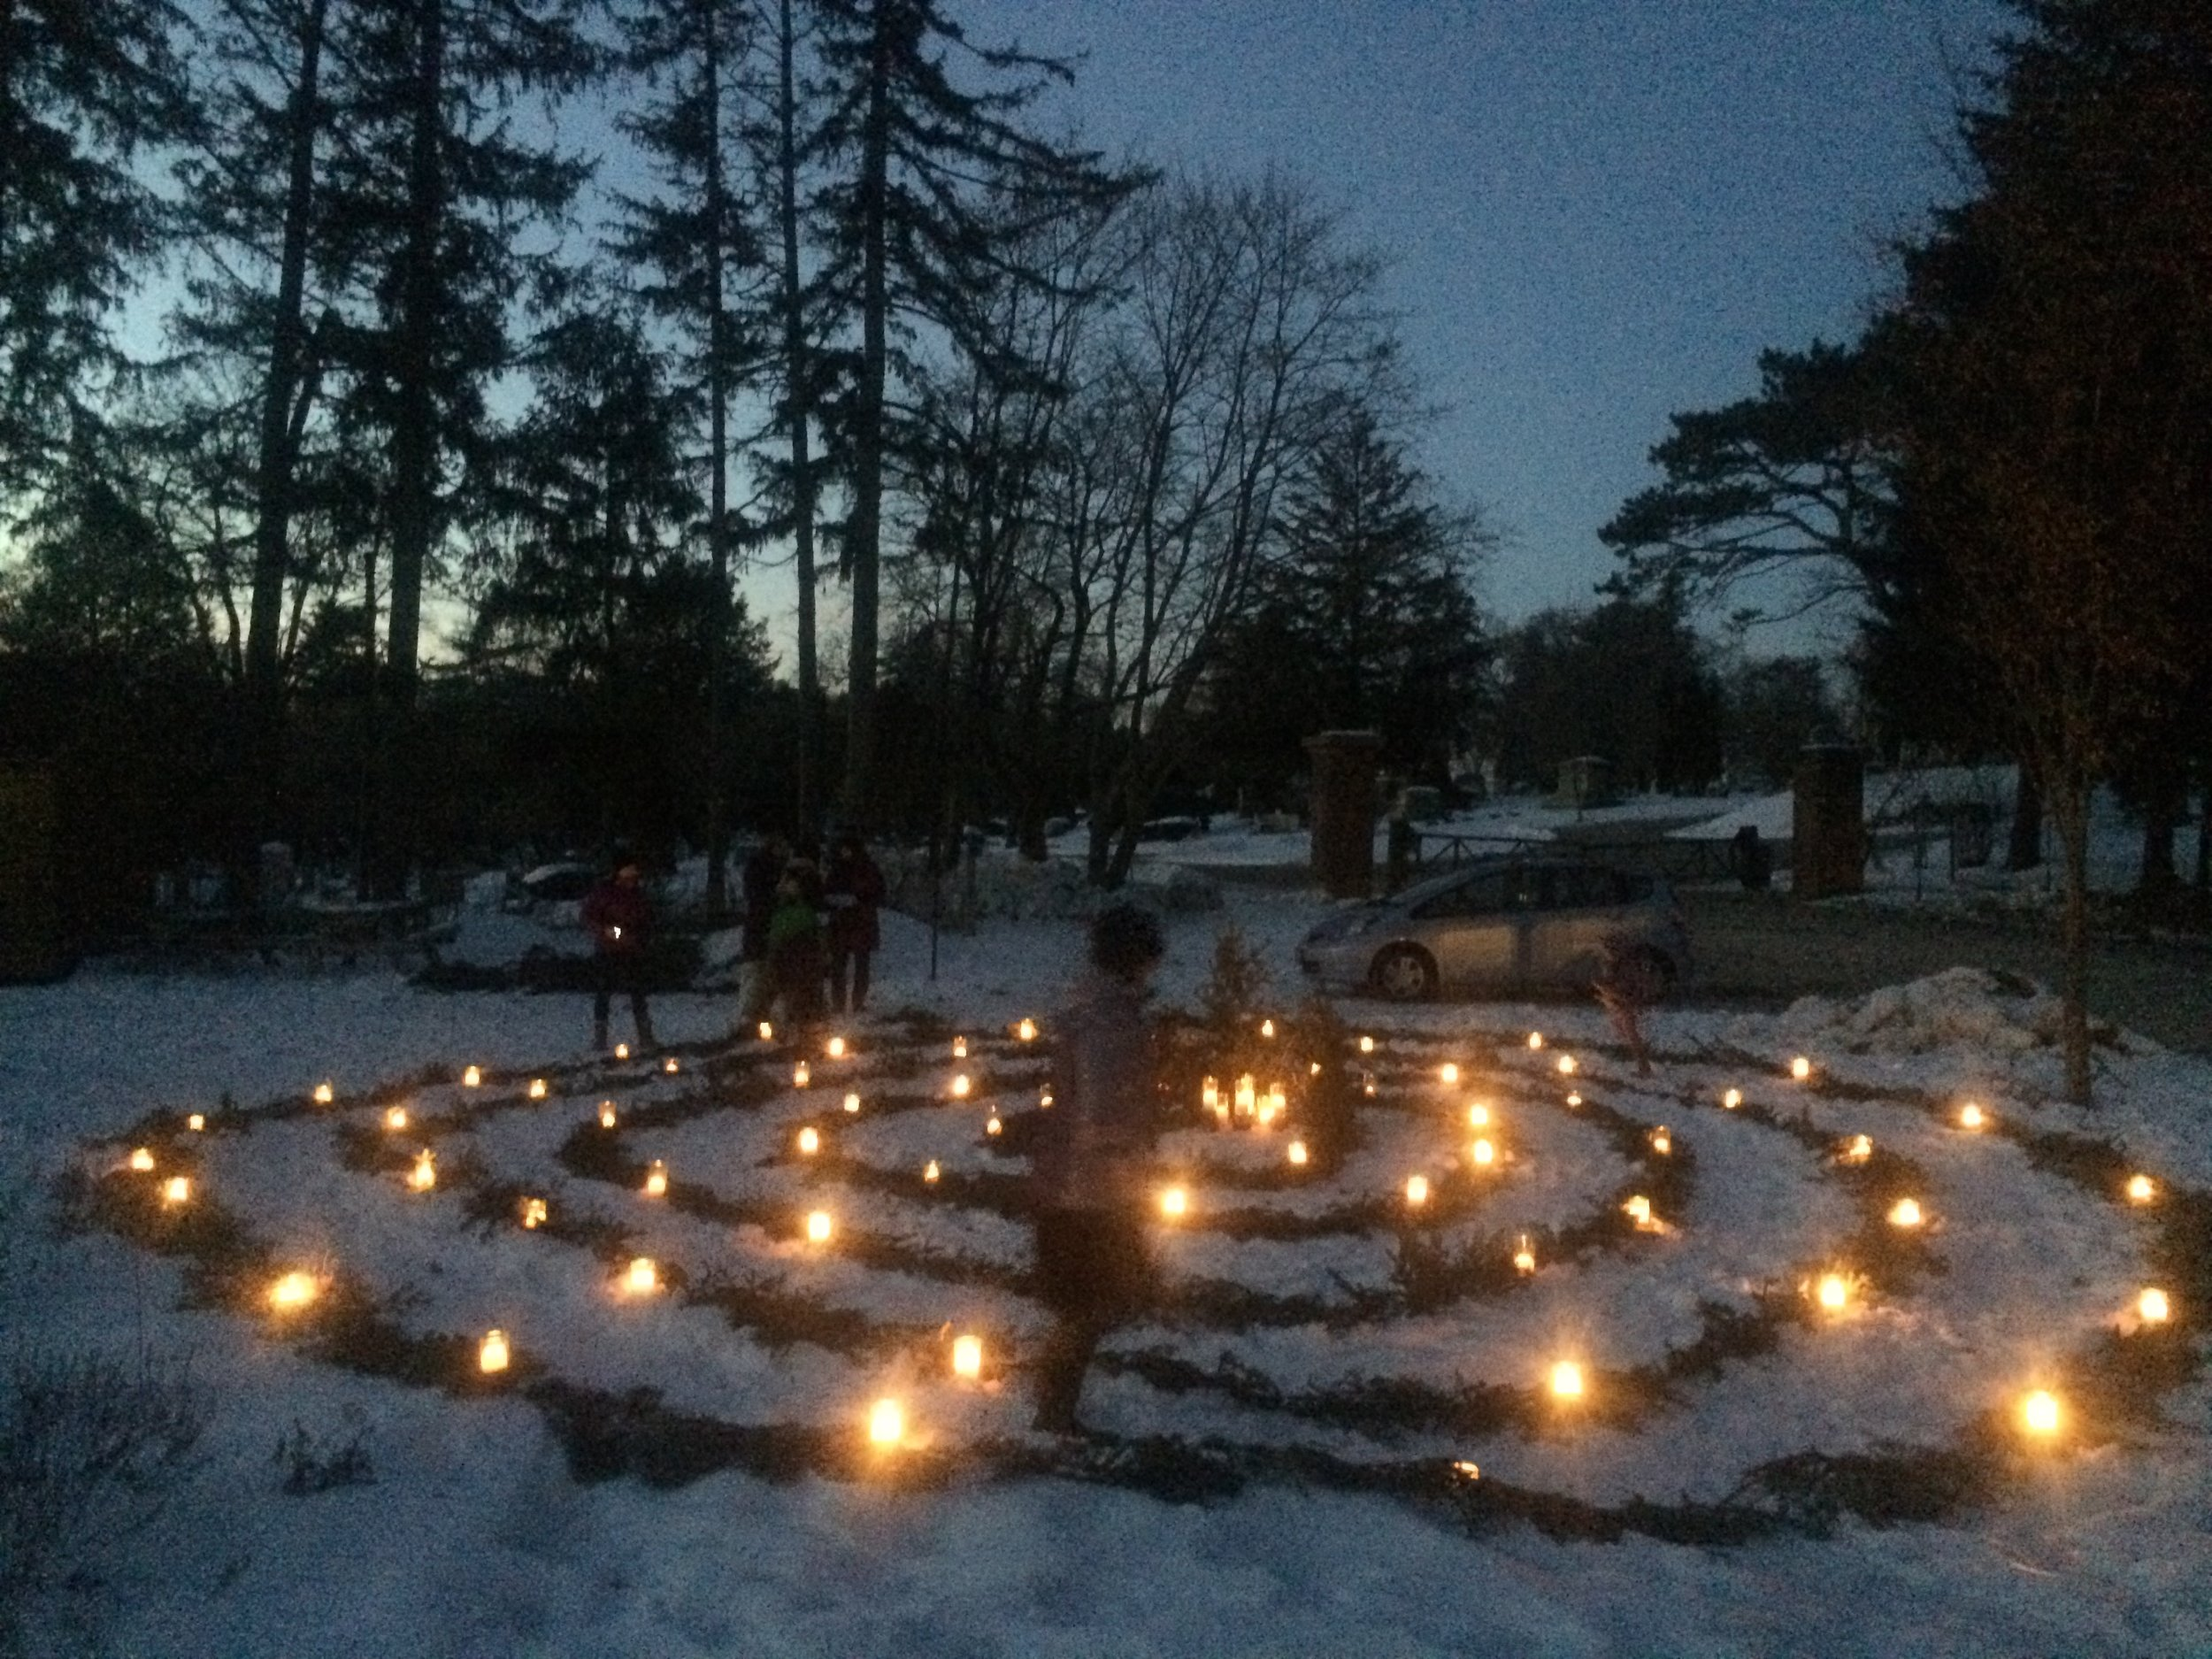 Deering Center Winter Solstice - Gathering on the darkest day to welcome in the light